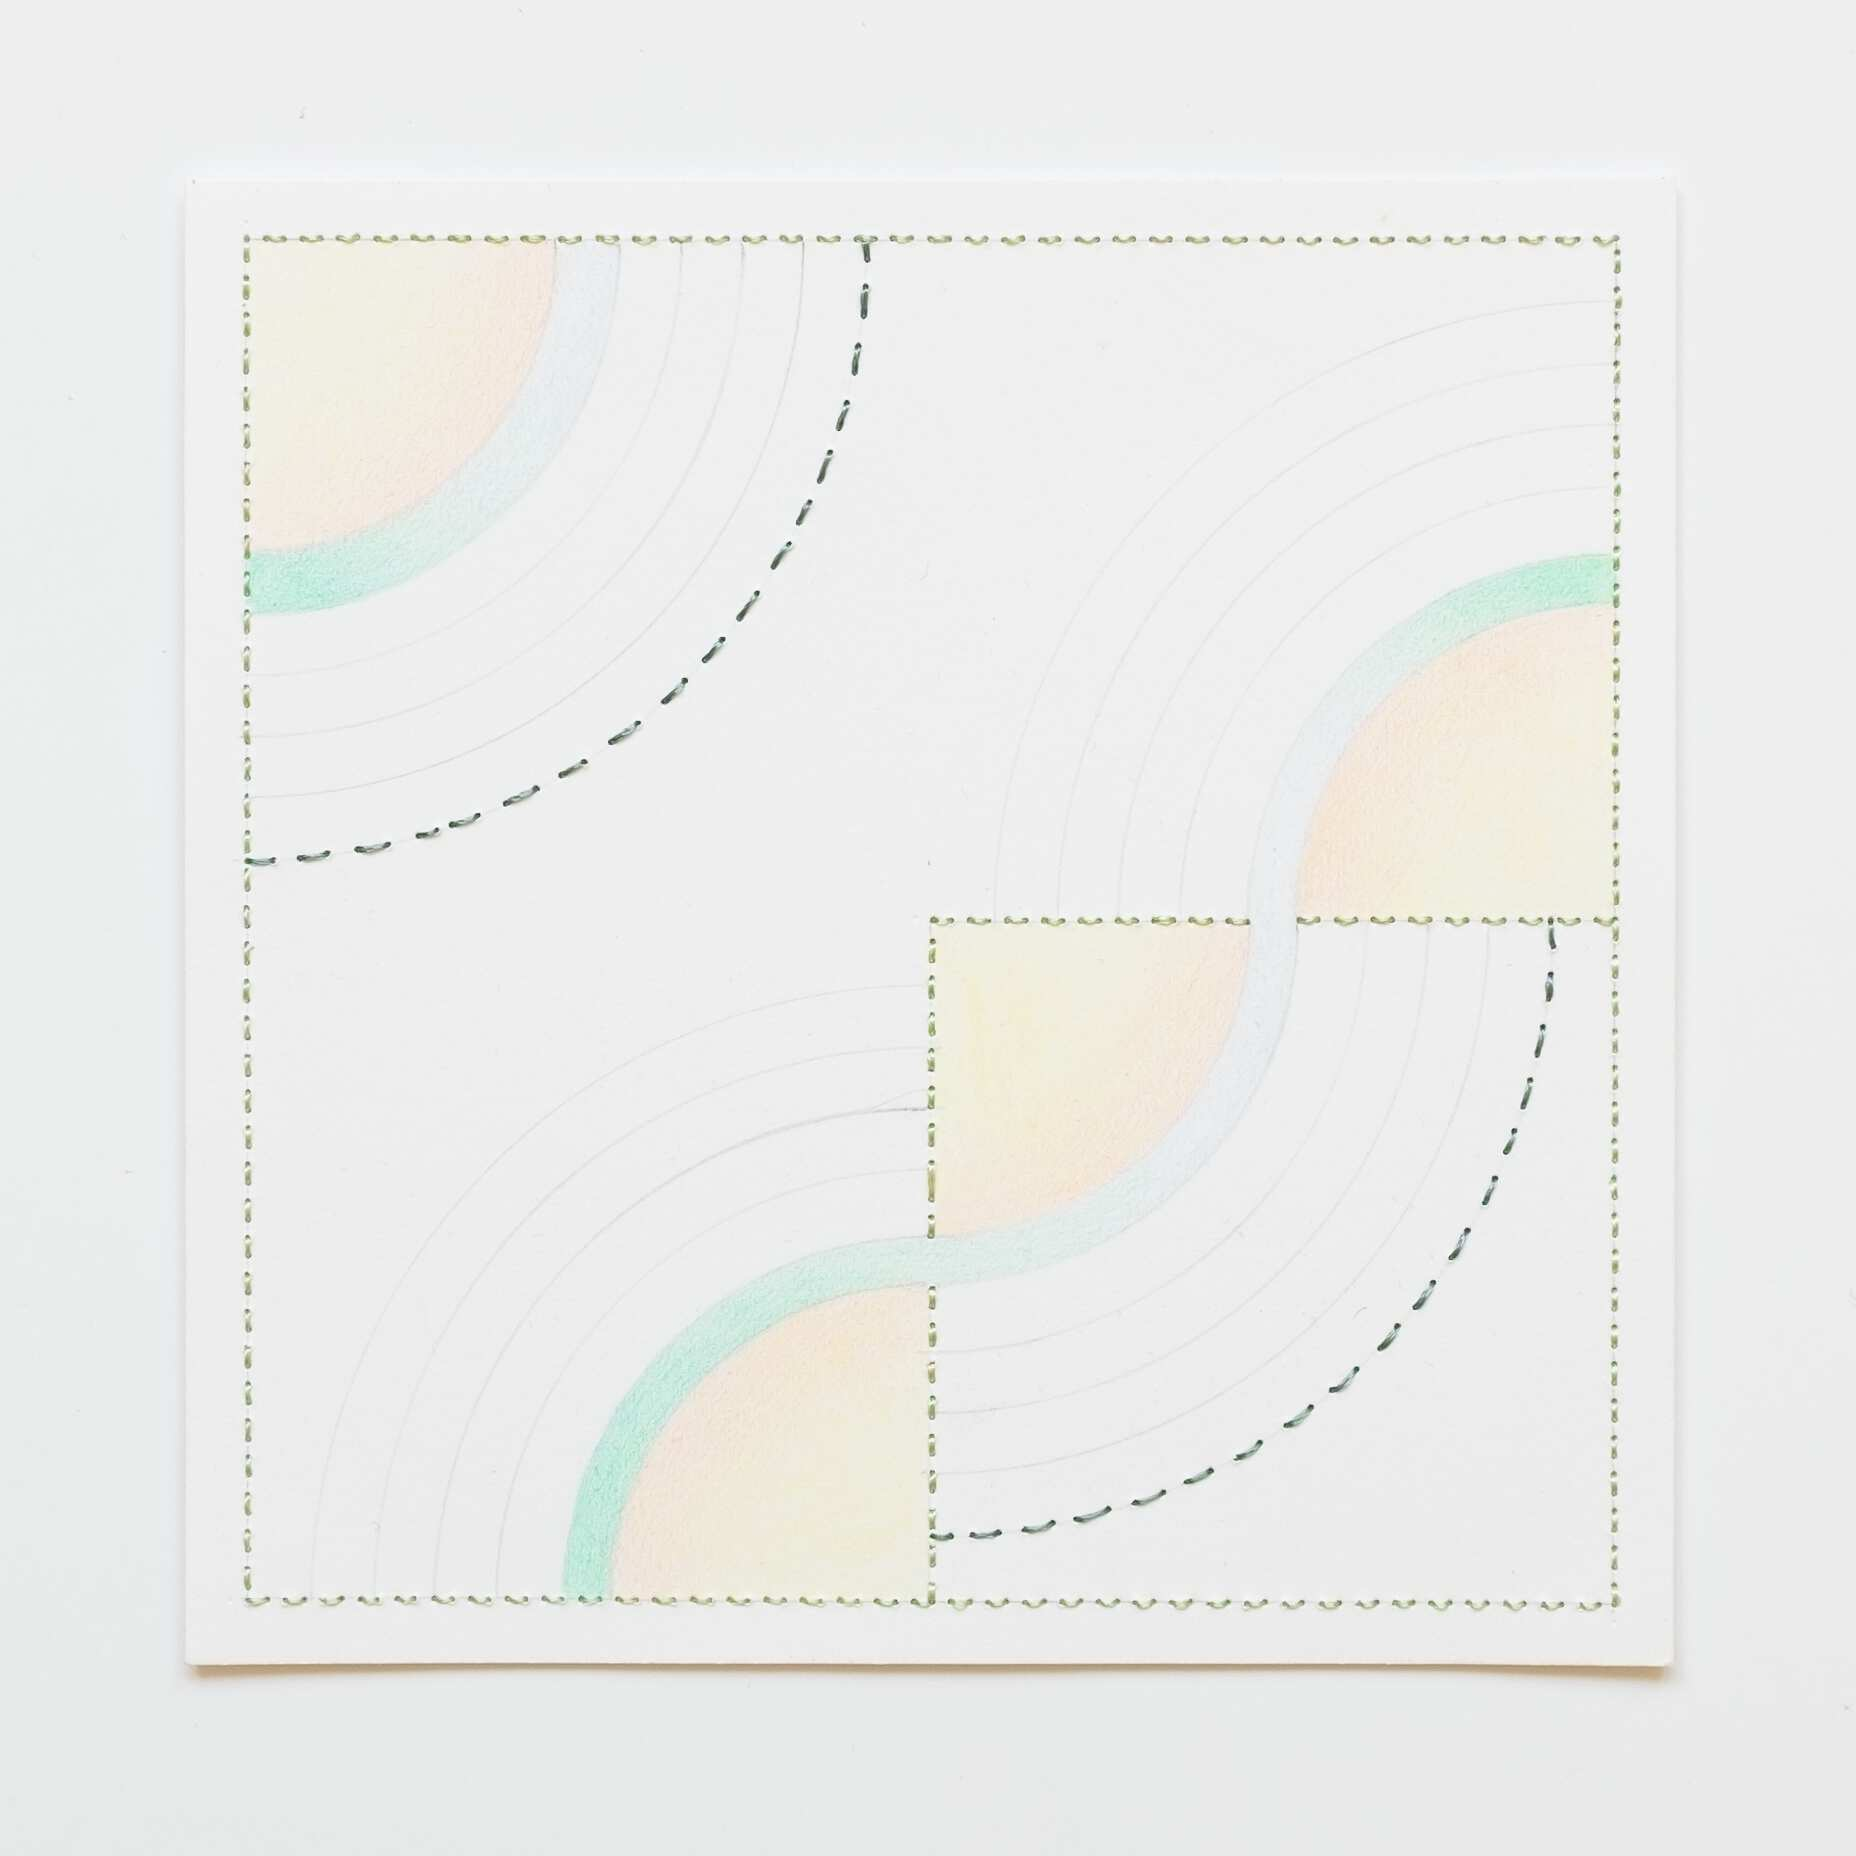 Quilted Composition [white // rainbows YGOB], Hand-embroidered silk thread, pencil, and coloured pencil on paper, 2019